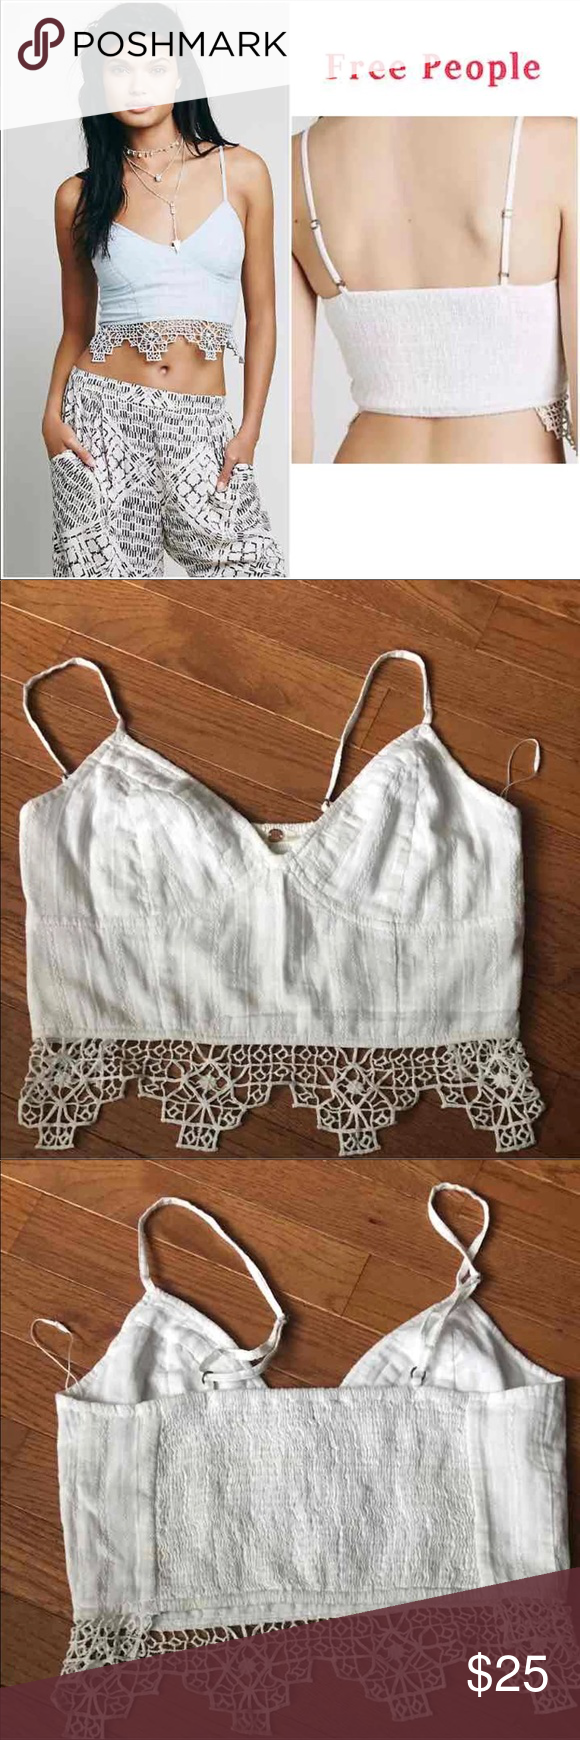 730677e535 Free People FP ONE Geo Lace Bralette Free People FP ONE Geo Lace Crop Top  Bralette New without tags White Size m (I have in size small) Free People  Tops